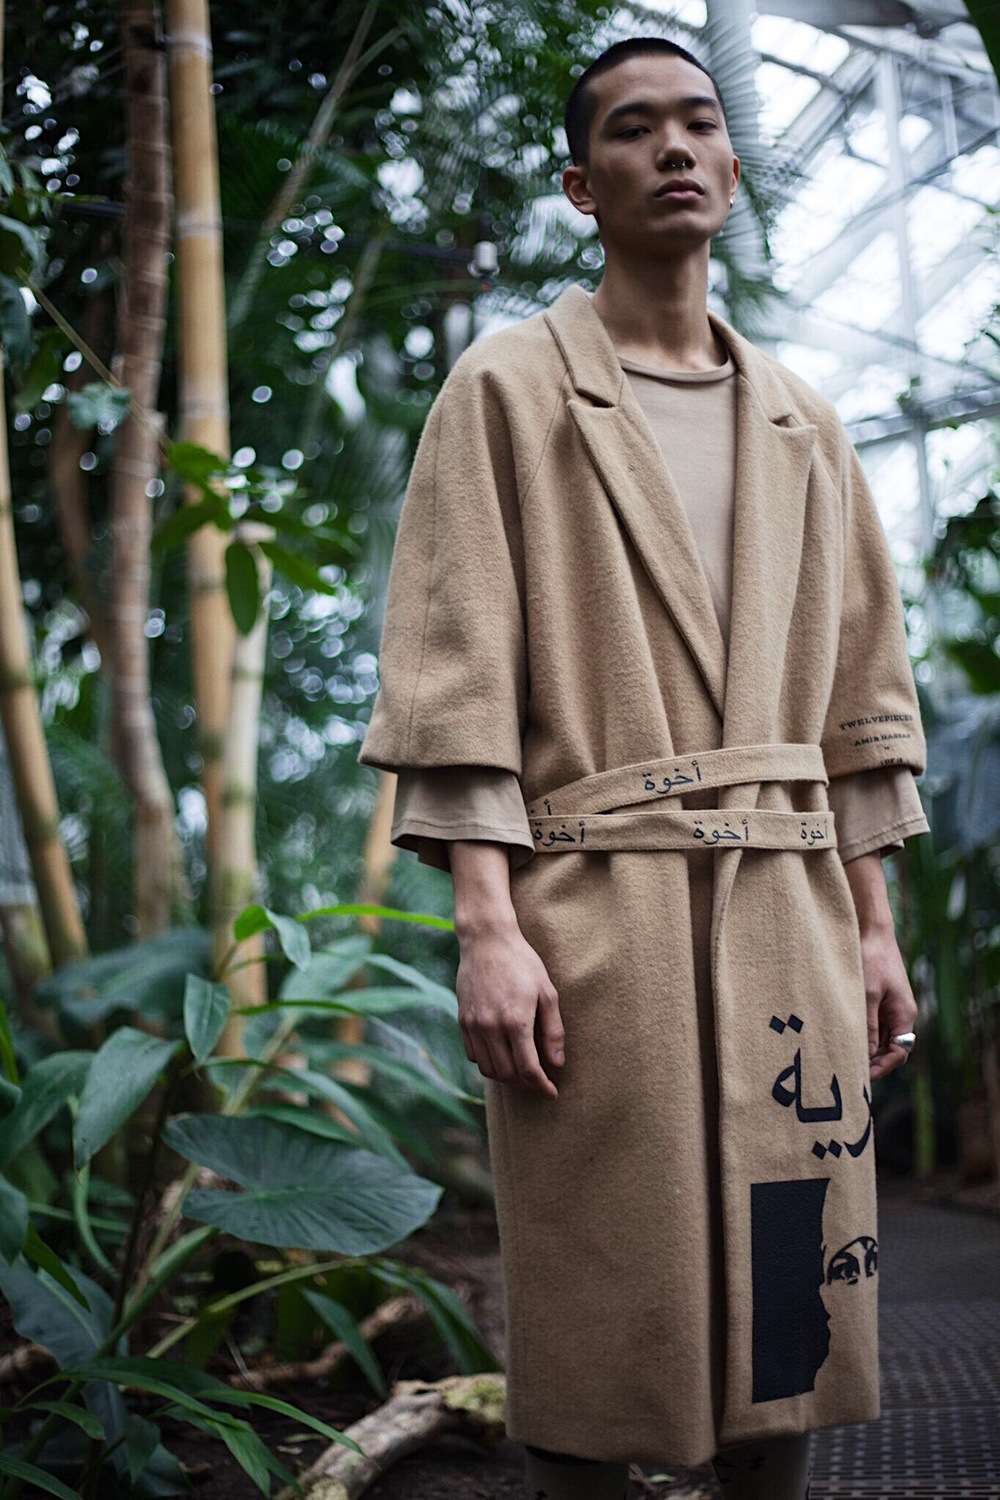 Twelvepieces Arabic-Inspired SS17 Collection